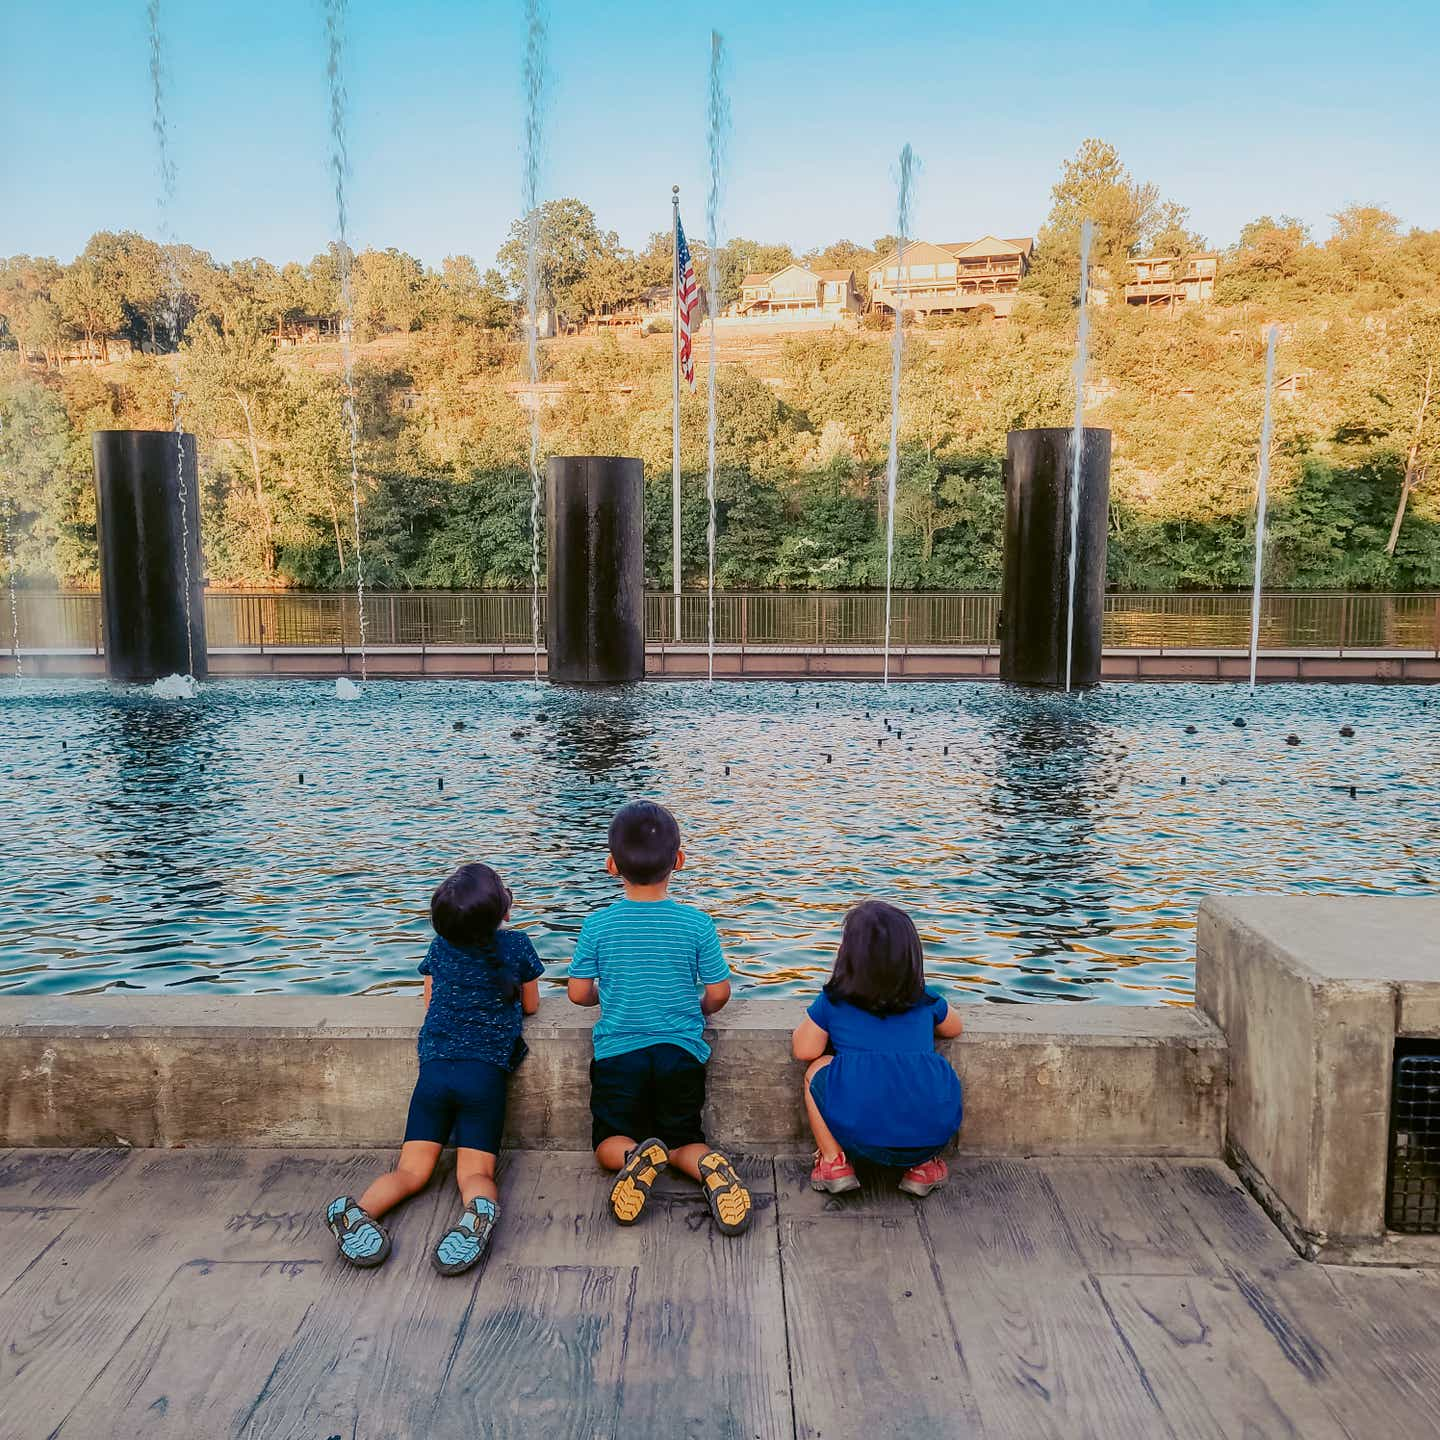 Angelica's kids at the fountain show